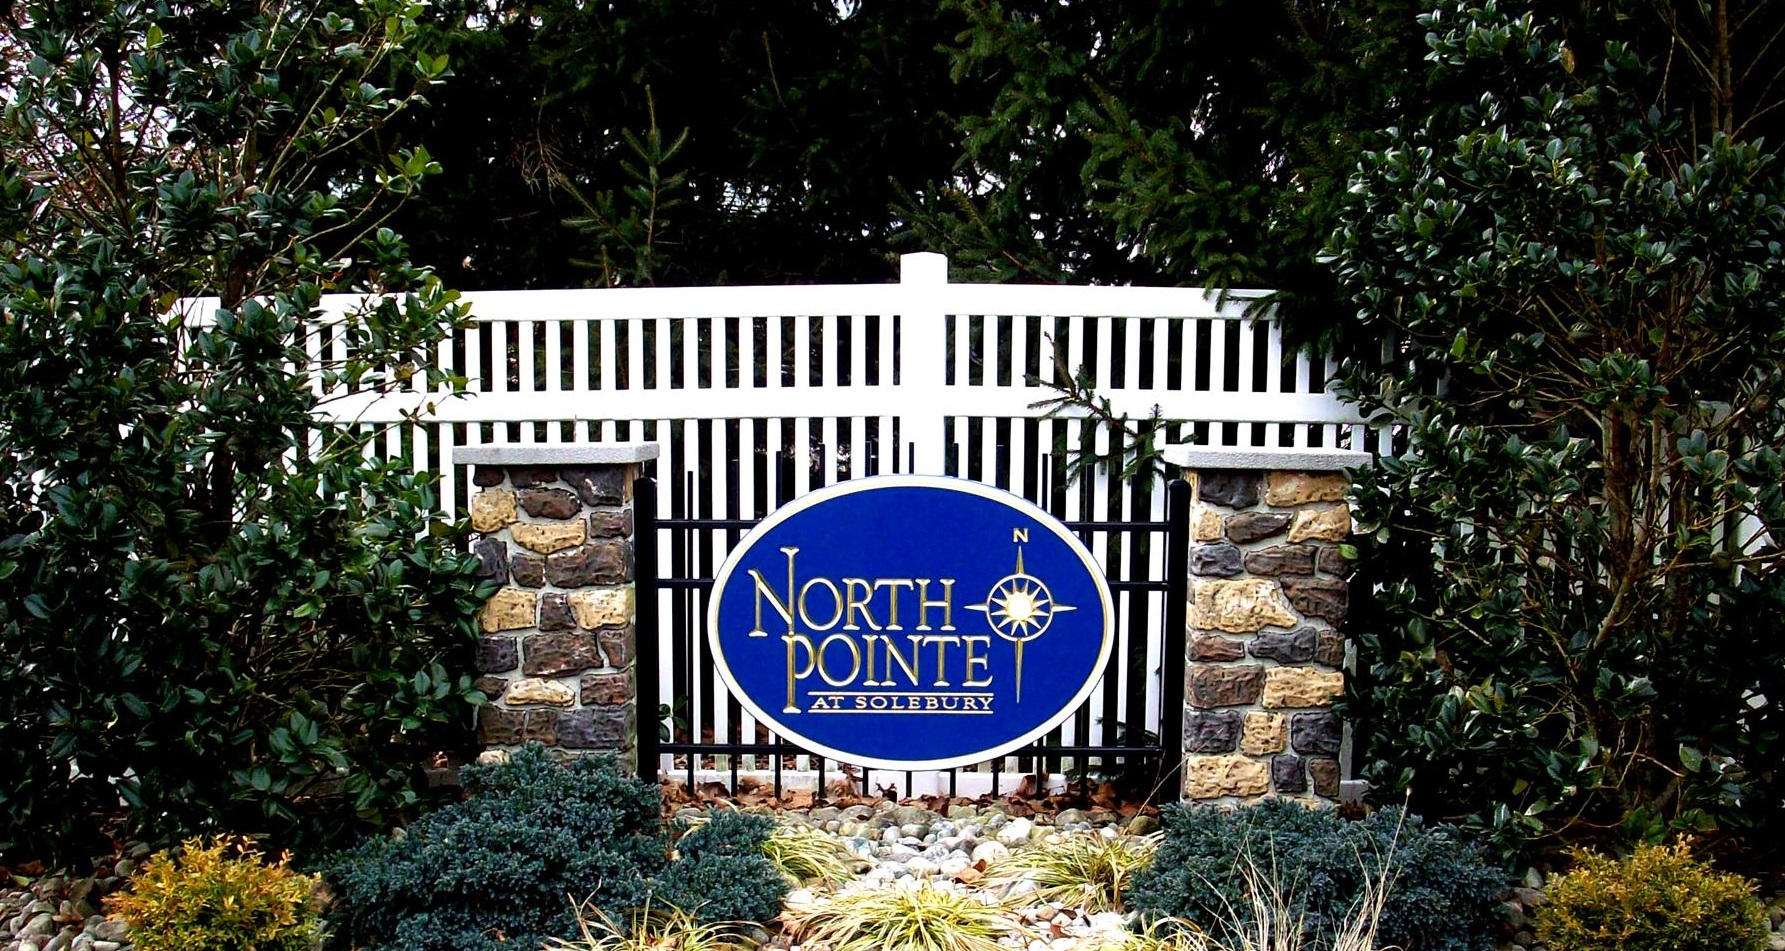 North Pointe at Solebury Homes for Sale, Steve Walny REALTOR, North Pointe New Hope Homes for Sale, Steve Walny